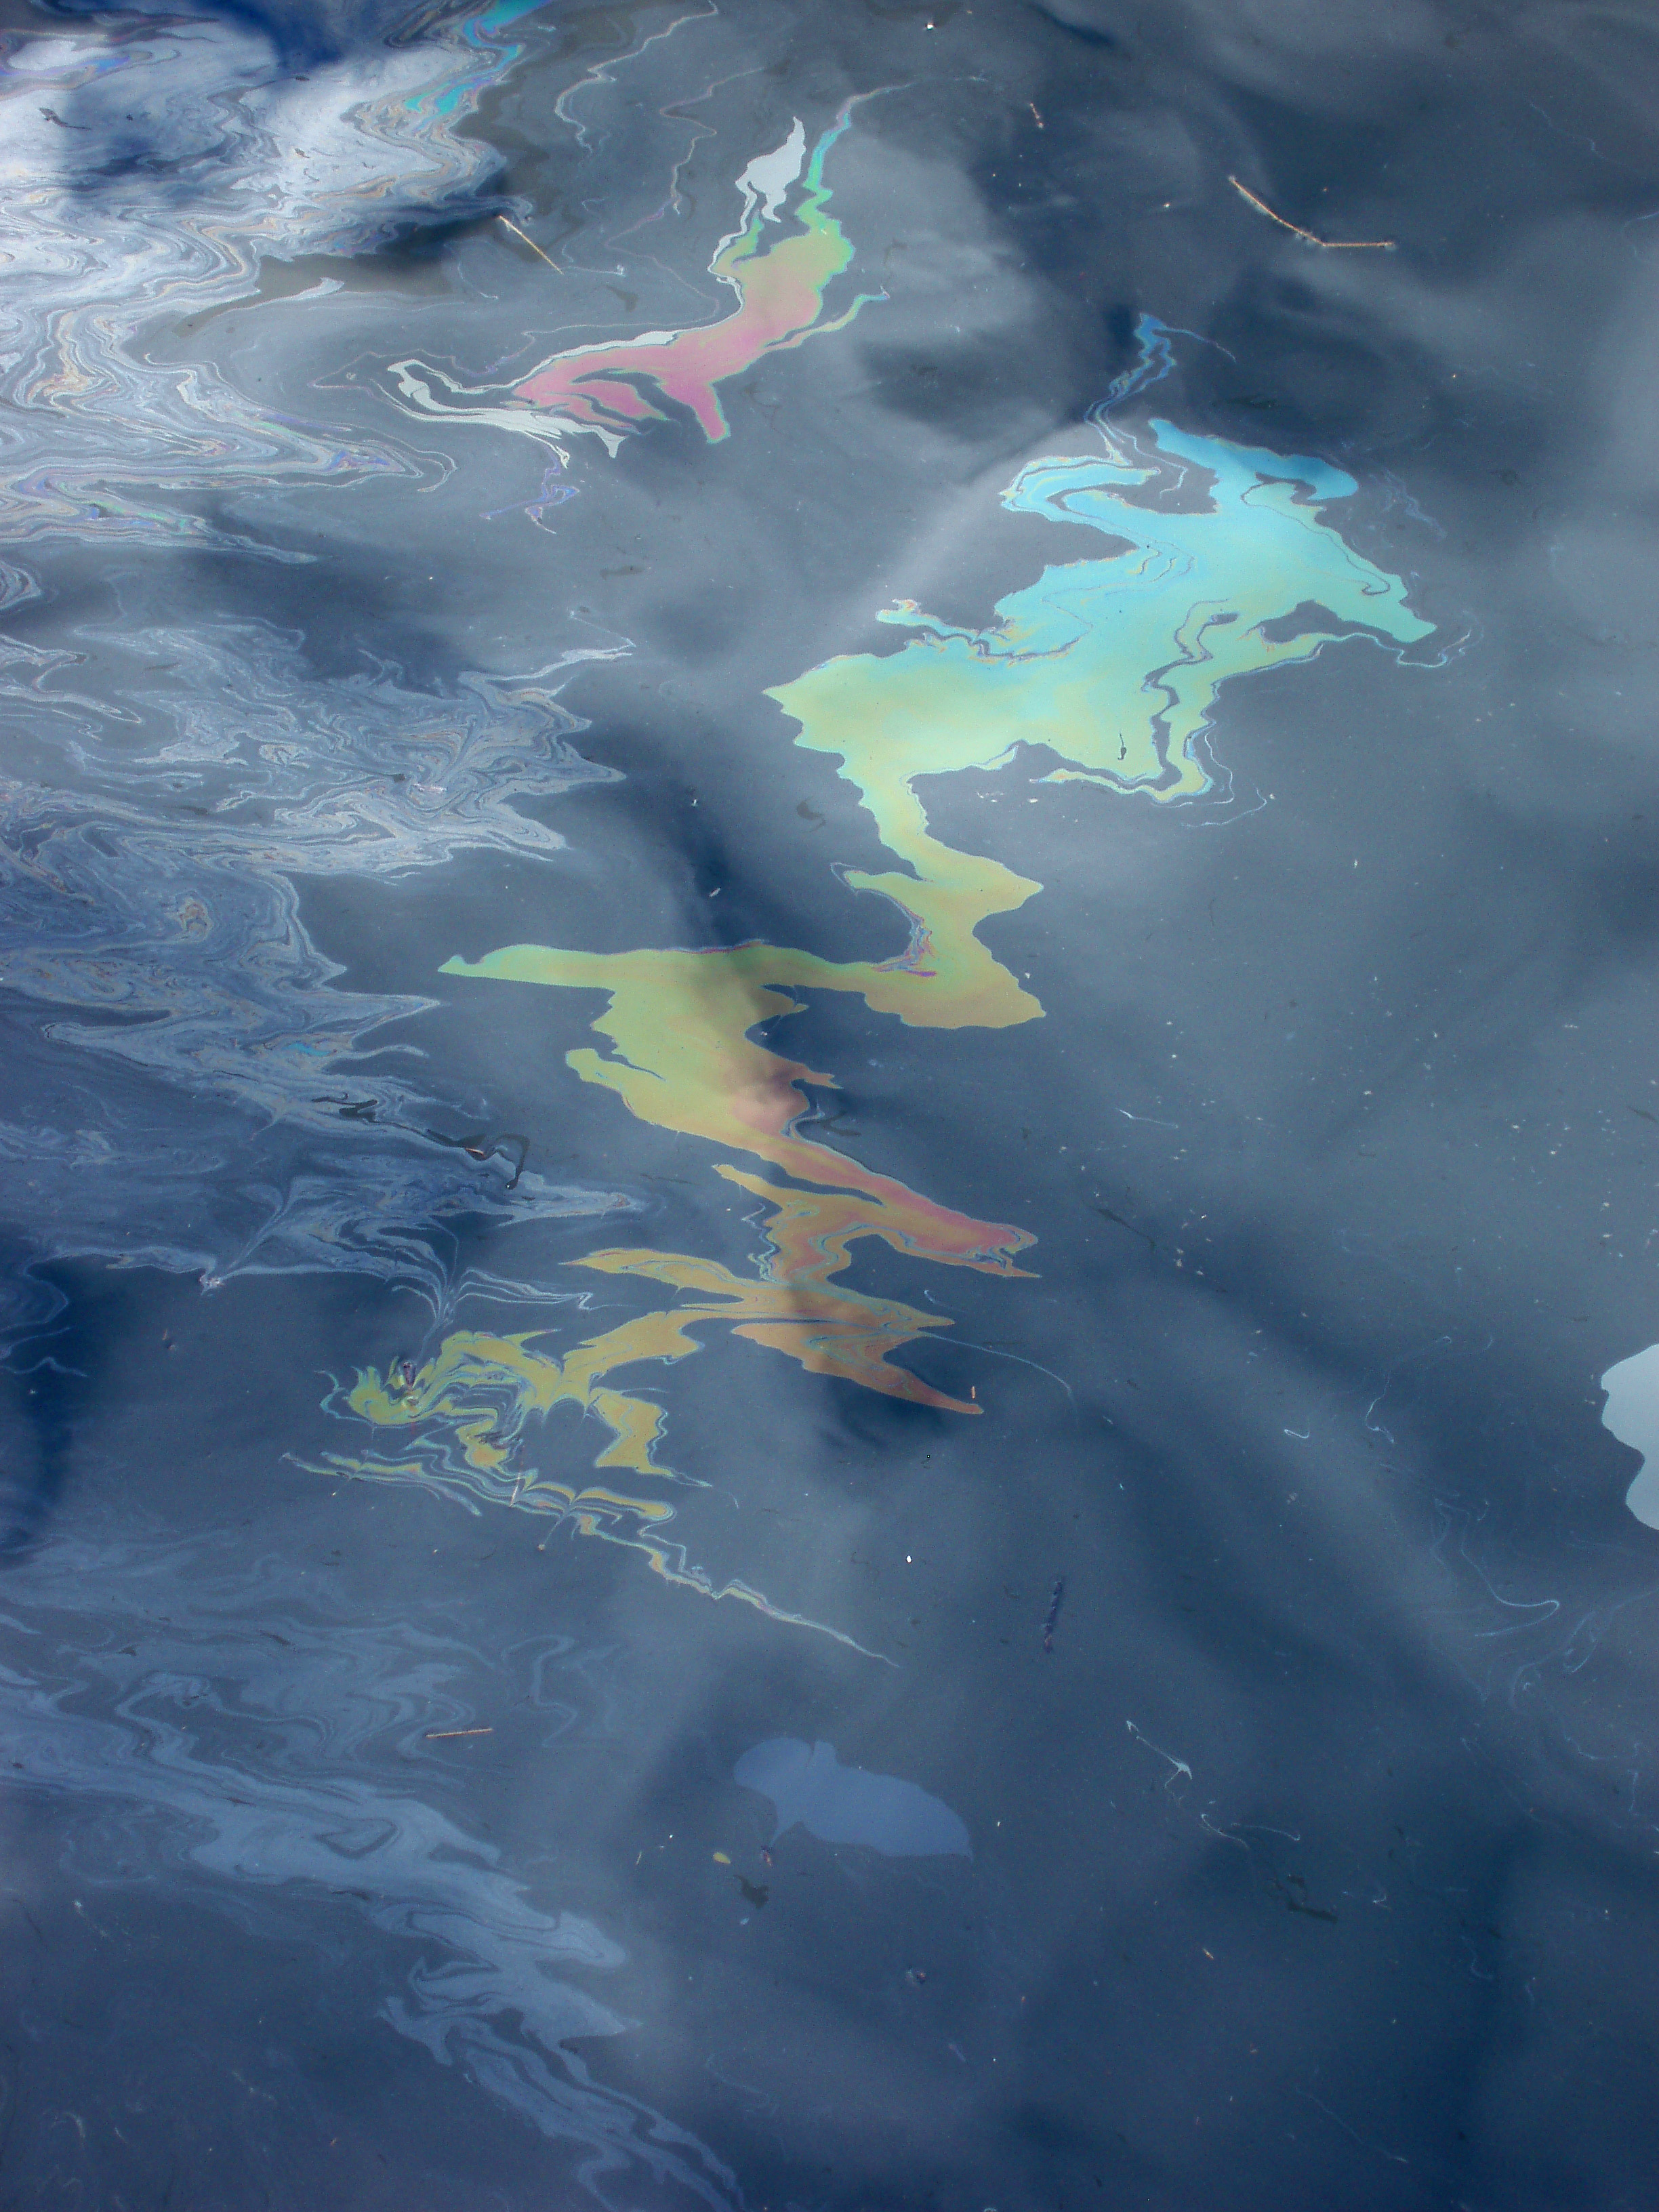 oil slick rainbow | Free backgrounds and textures | Cr103.com